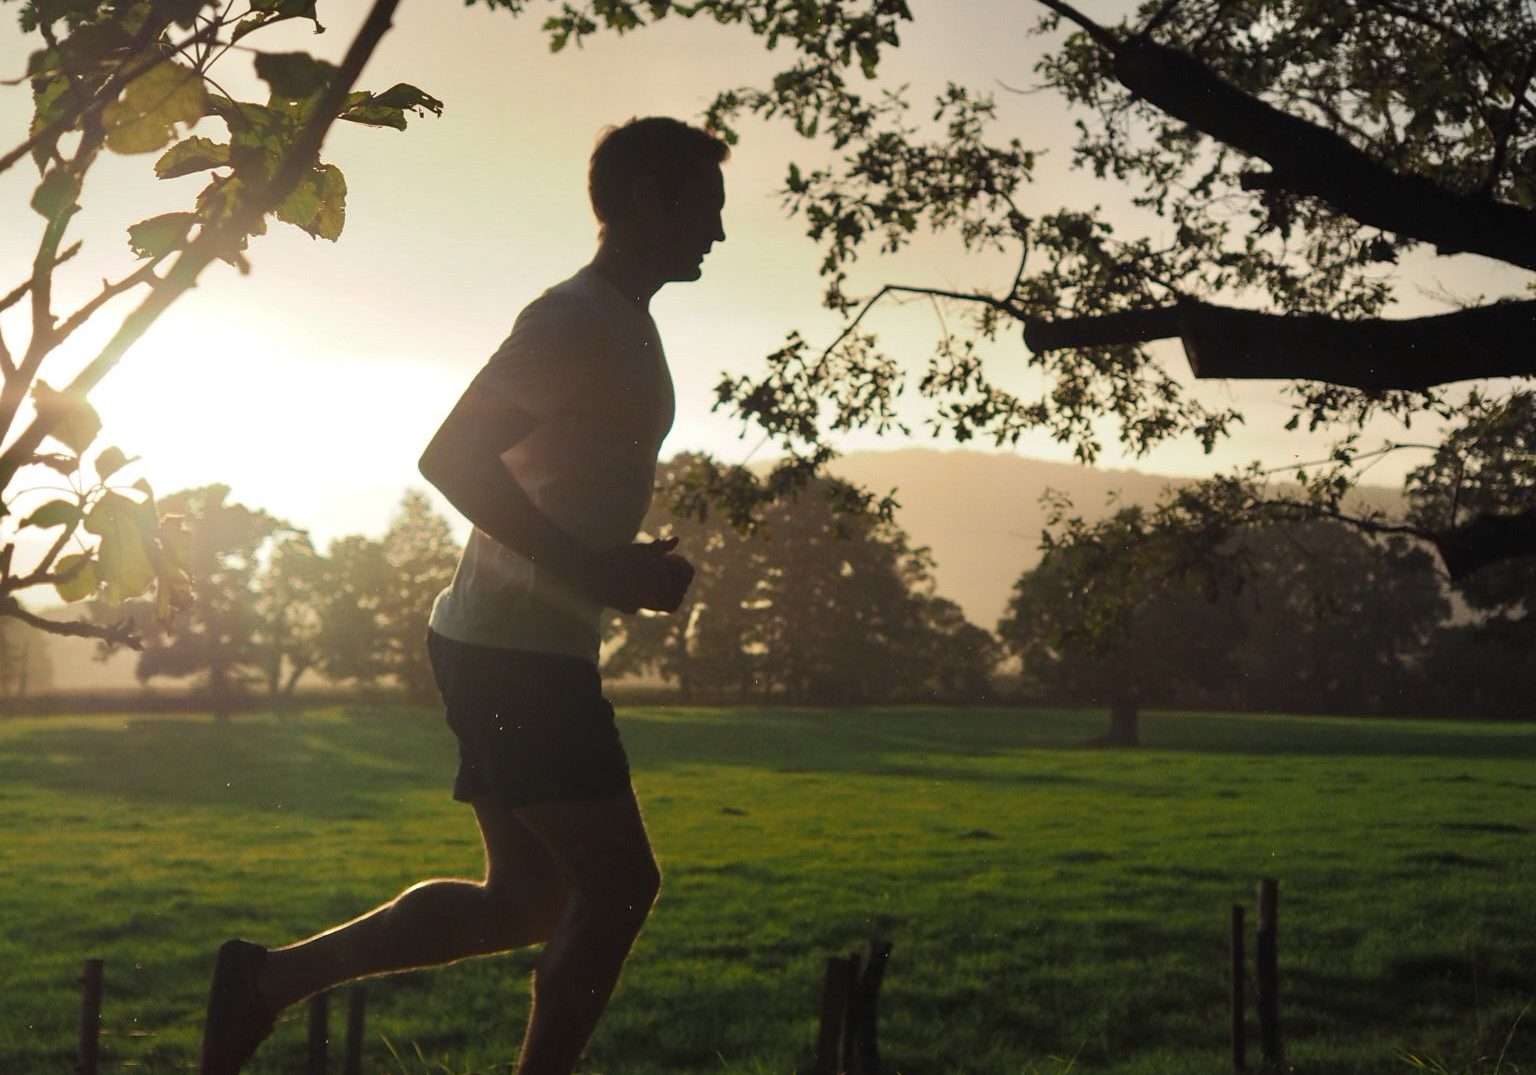 A morning workout kick starts your day - PHOTO CREDIT: L Grimley